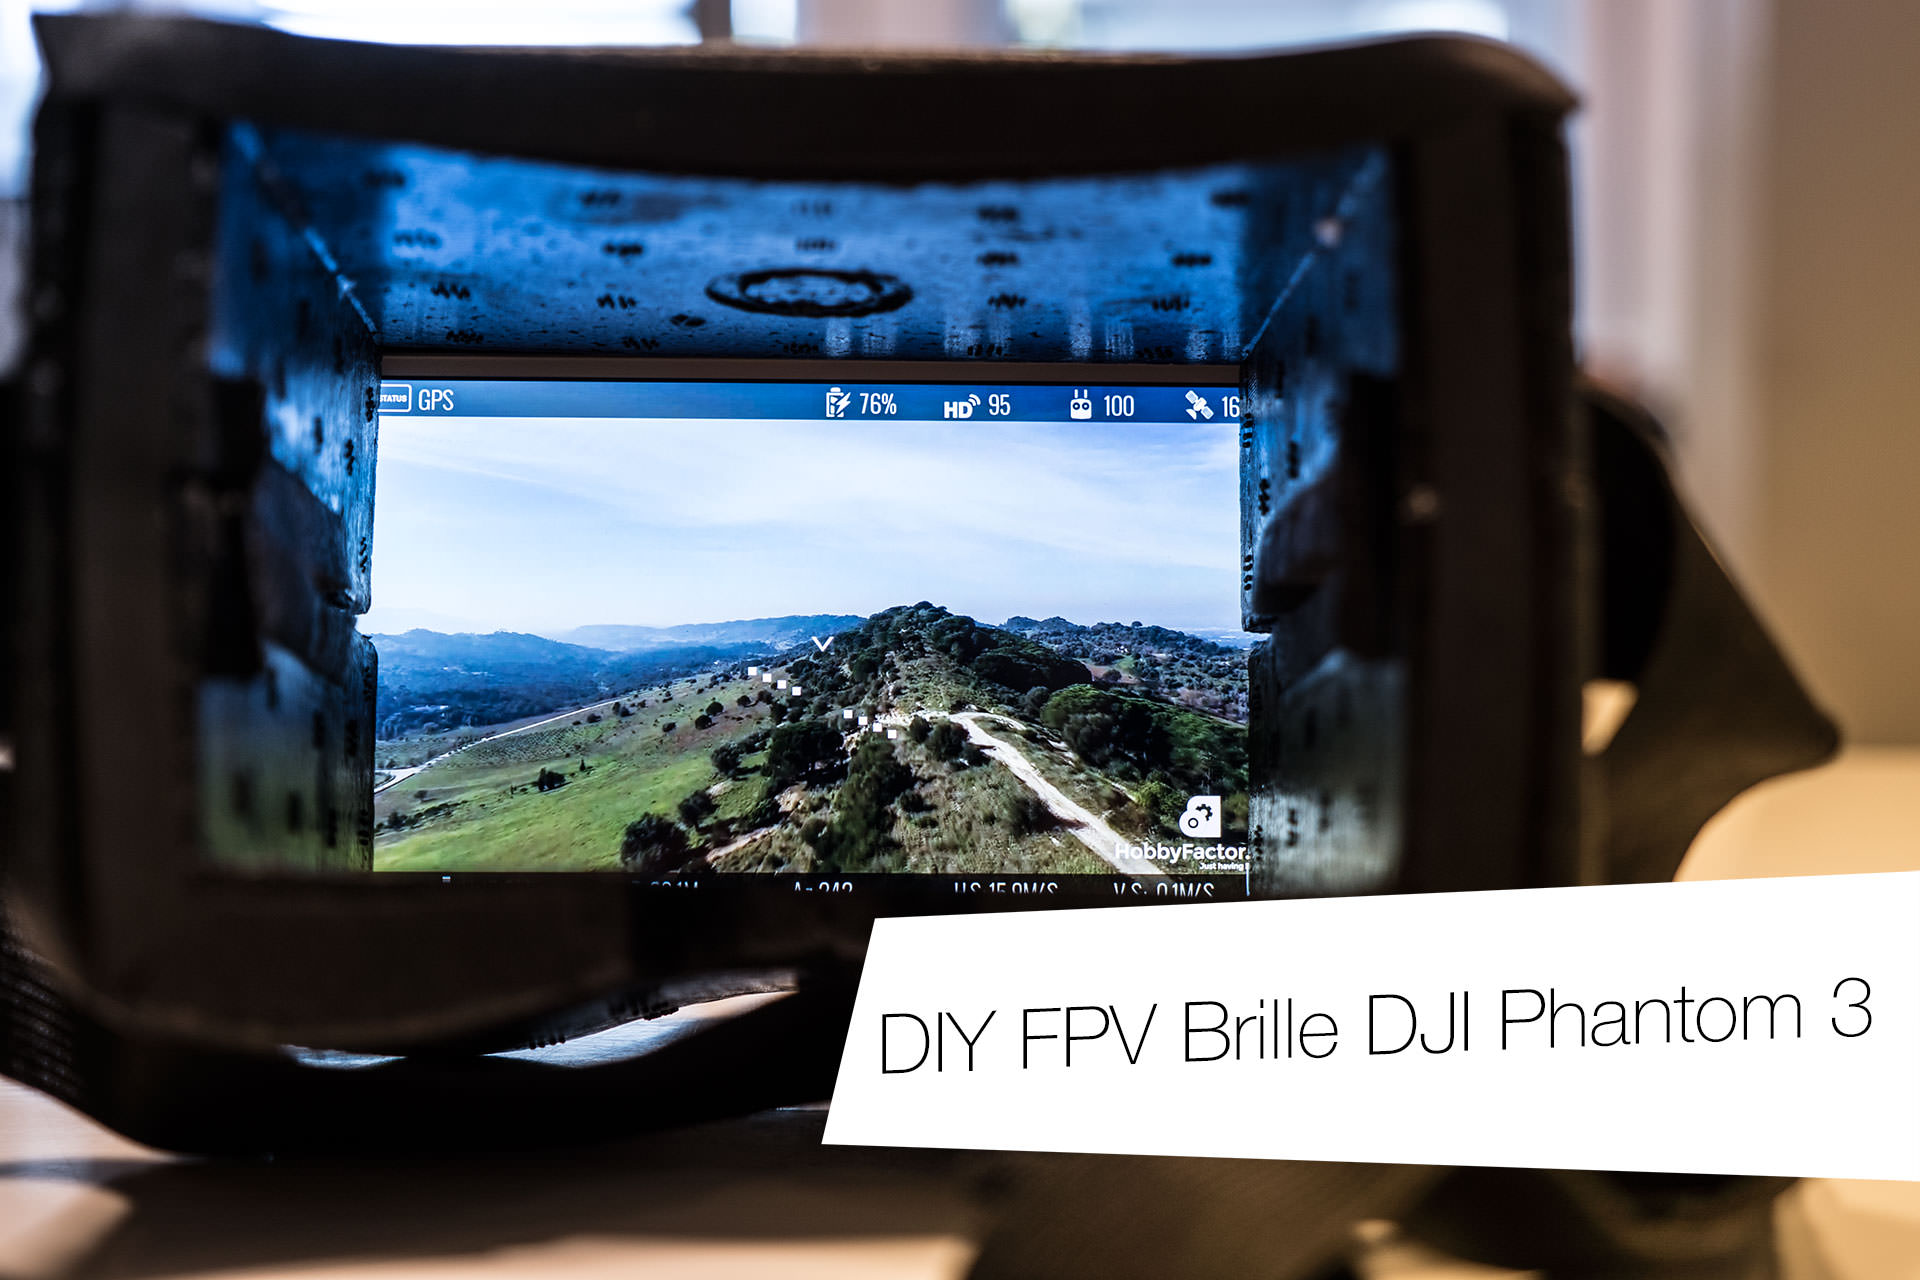 DIY FPV Brille für DJI Phantom 3 -